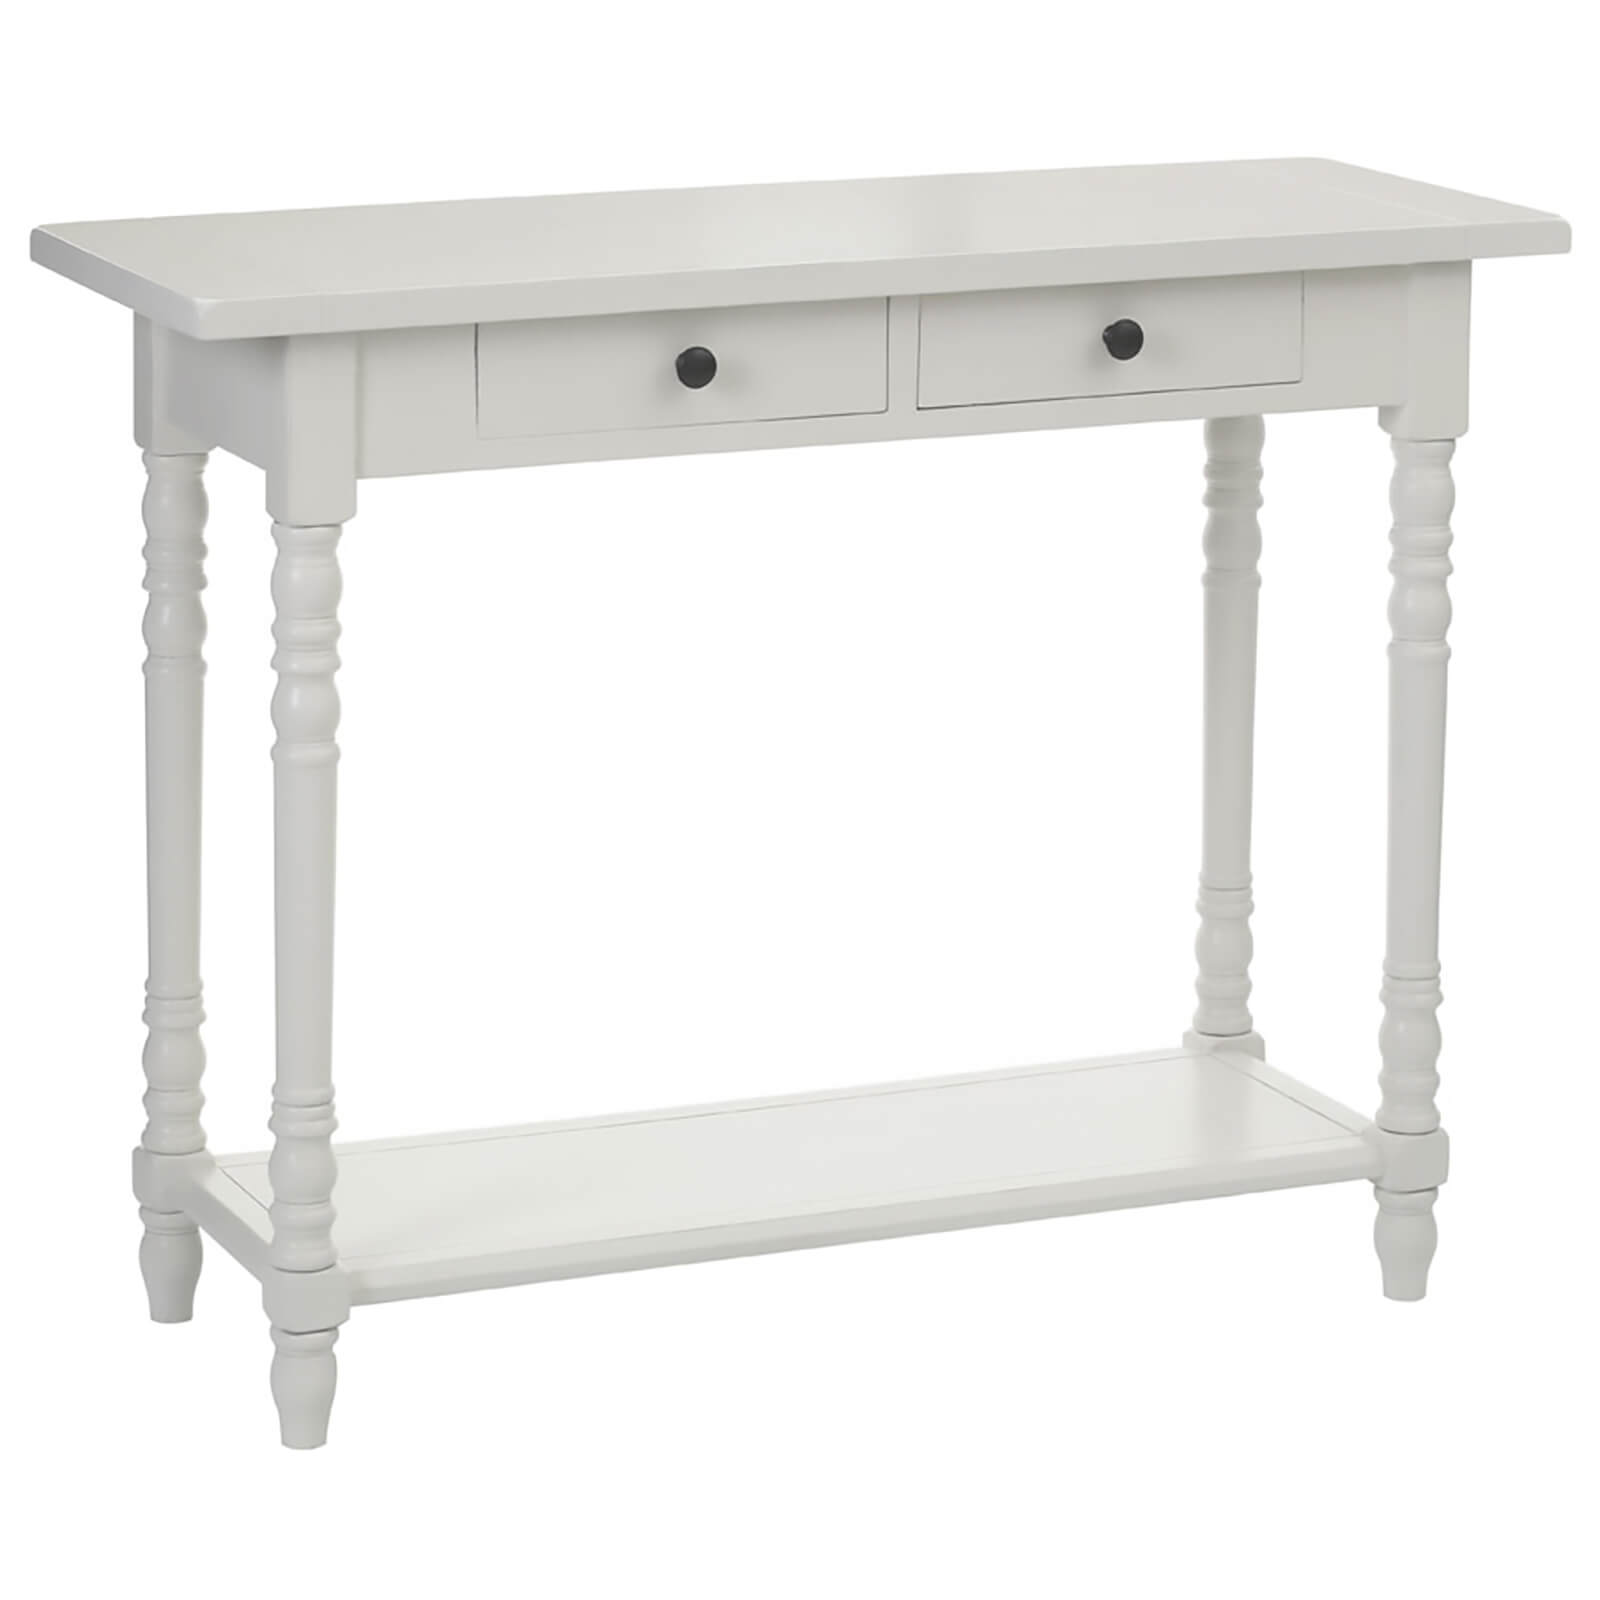 Fifty Five South Heritage Two Drawer Console Table - Antique White